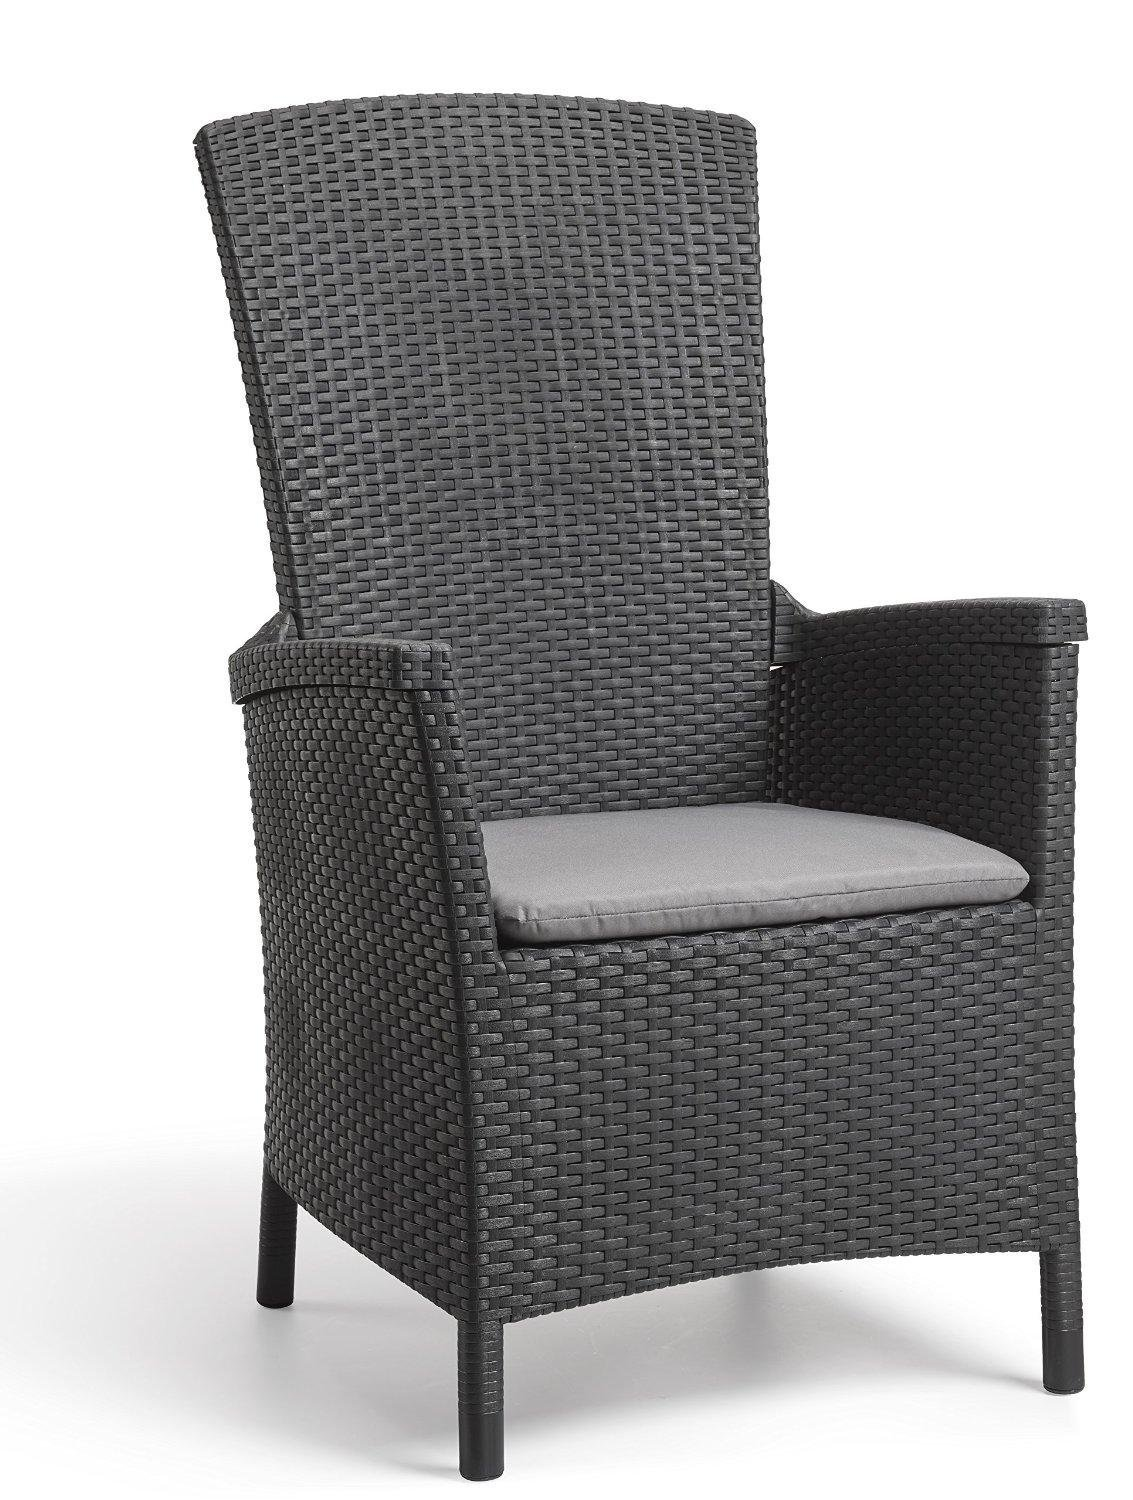 Allibert By Keter Vermont Rattan Reclining Chair Outdoor